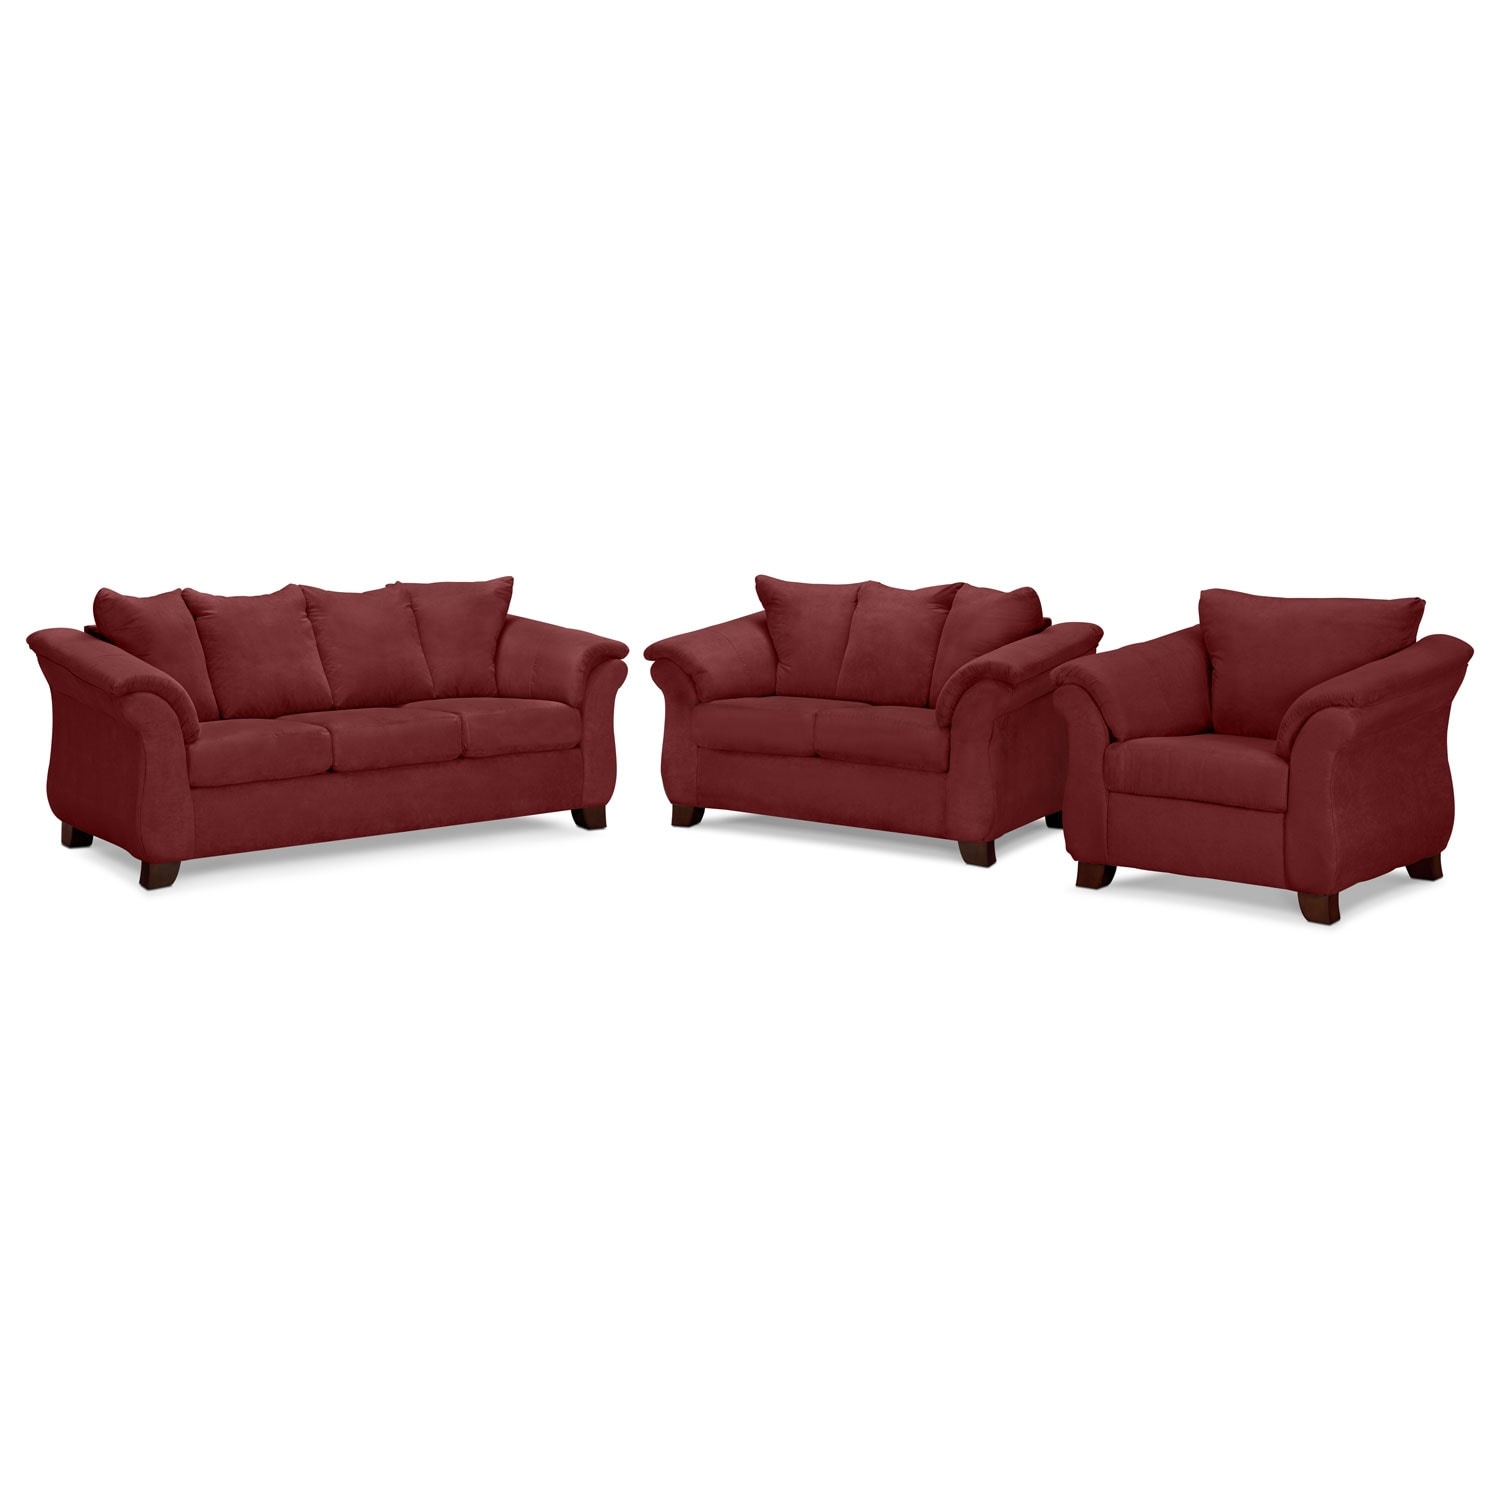 Living Room Furniture - Adrian Sofa, Loveseat and Chair Set - Red